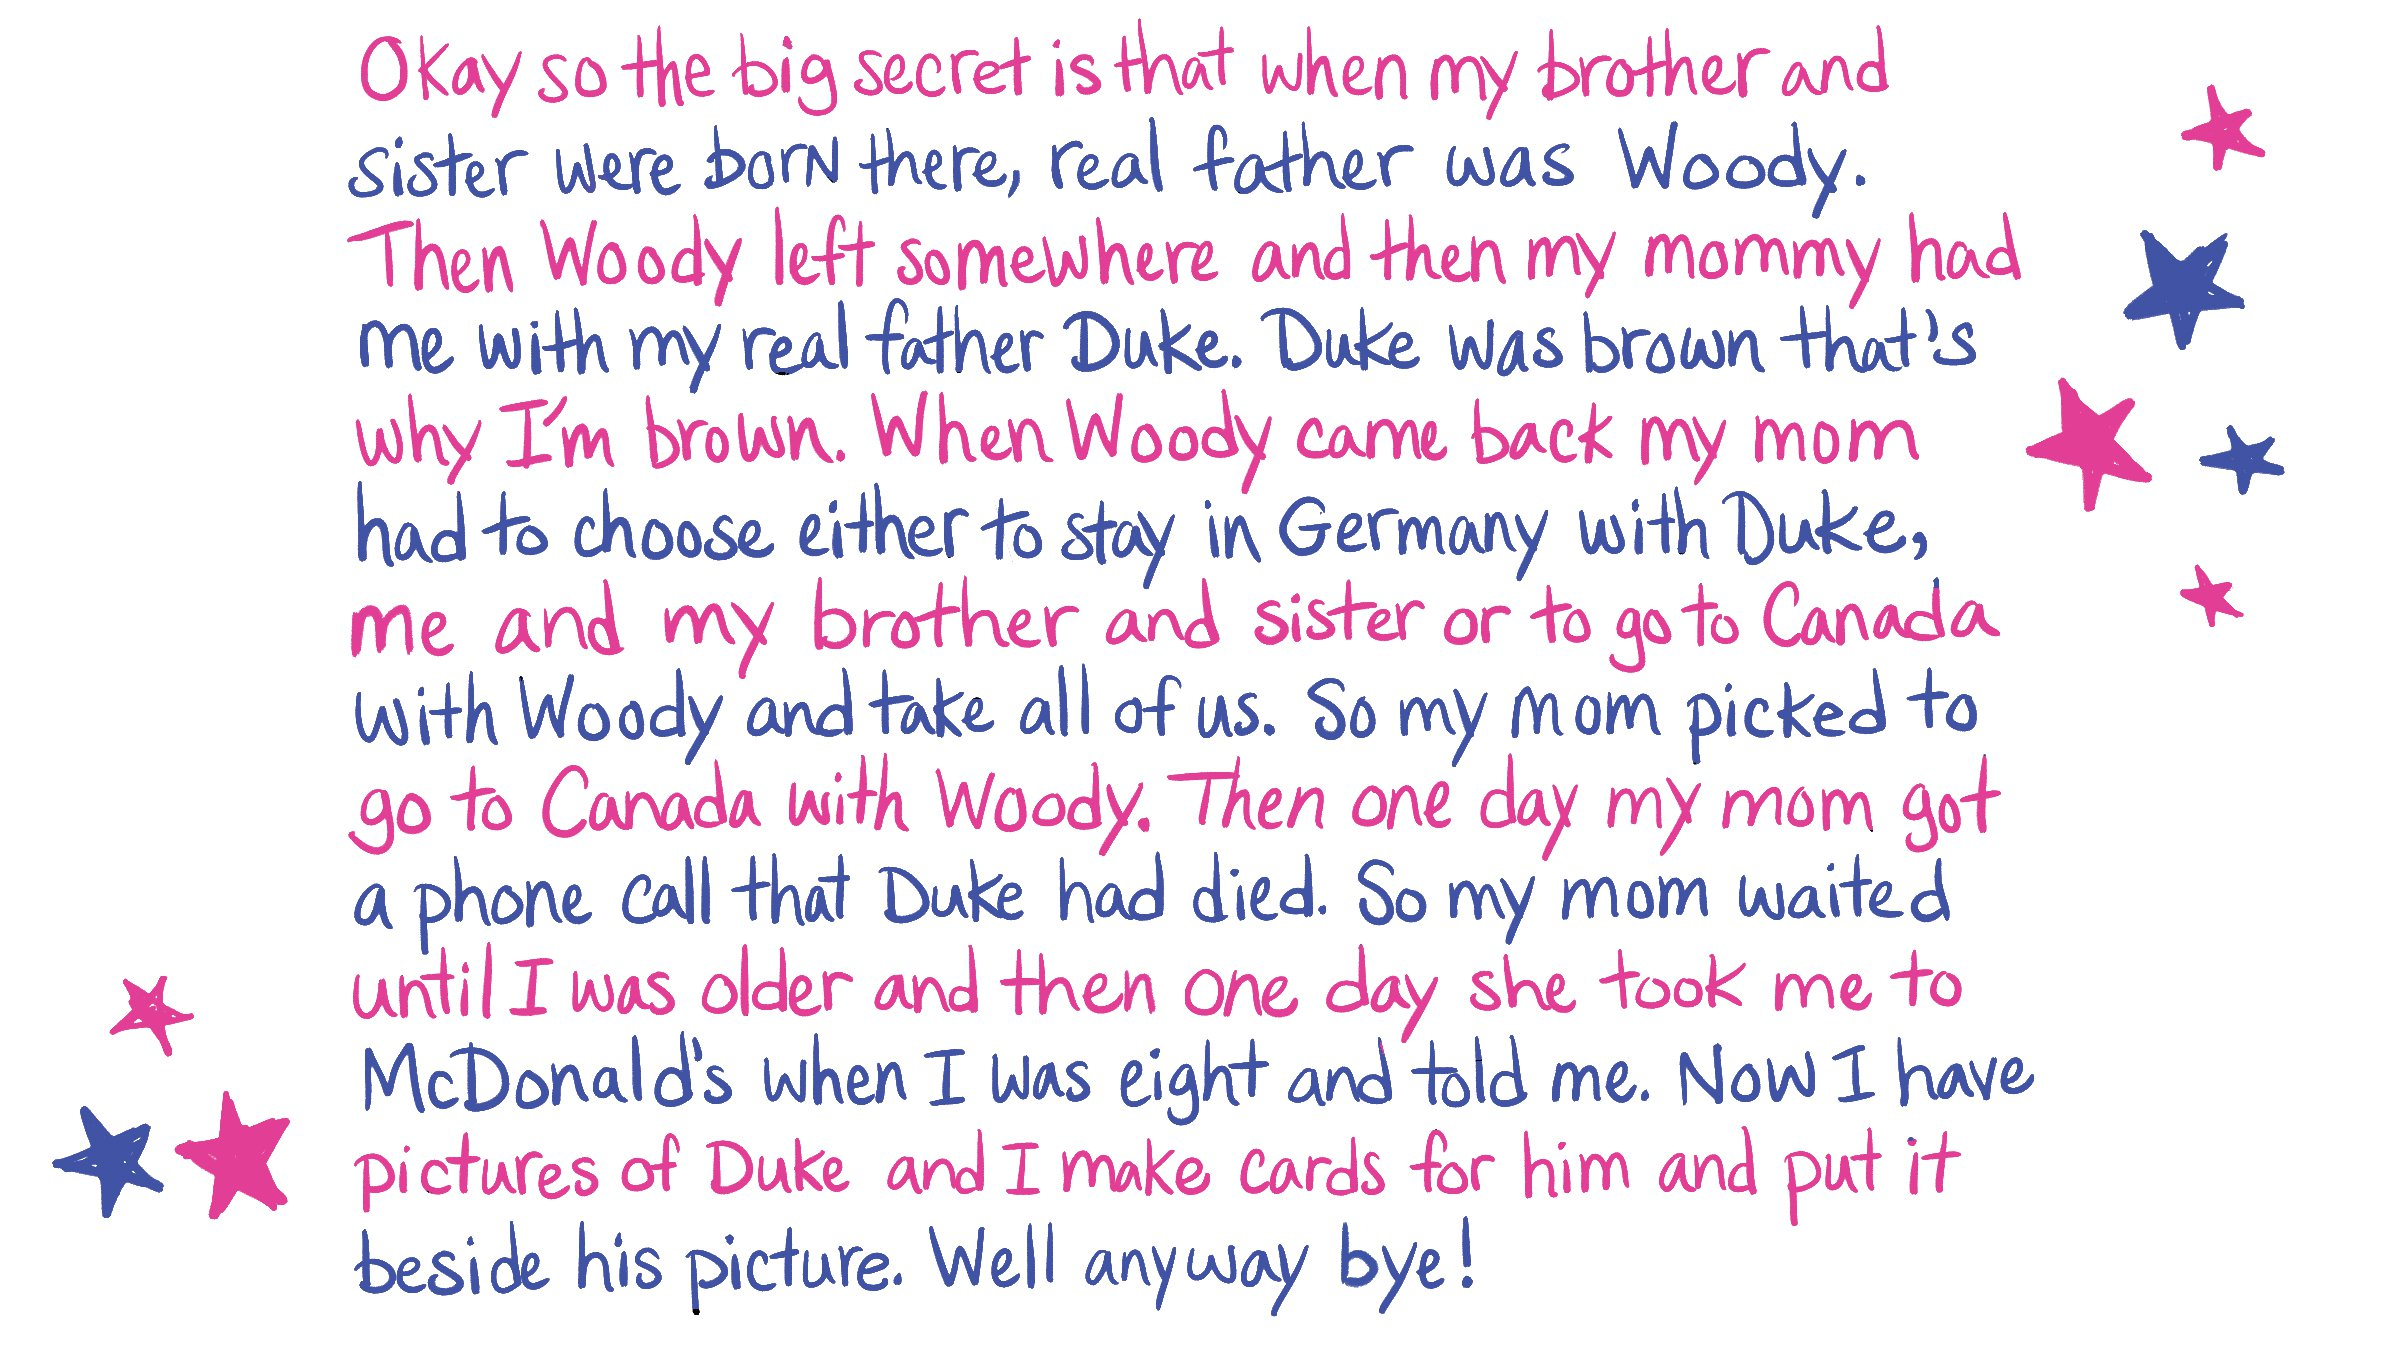 Okay so the big secret is that when my brother and sister were born there [sic], real father was Woody. Then Woody left somewhere and then my mommy had me with my real father Duke. Duke was brown that's why I'm brown. When Woody came back my mom had to choose either to stay in Germany with Duke, Me [sic] and my brother and sister or to go to Canada with Woody and take all of us. So my mom picked to go to Canada with Woody. Then one day my mom got a phone call that Duke had died. So my mom waited until I was older and the [sic] one day she took me to McDonald's when I was eight and told me. Now I have pictures of Duke and I make cards for him and put it beside his picture. Well anyway Bye! [sic]